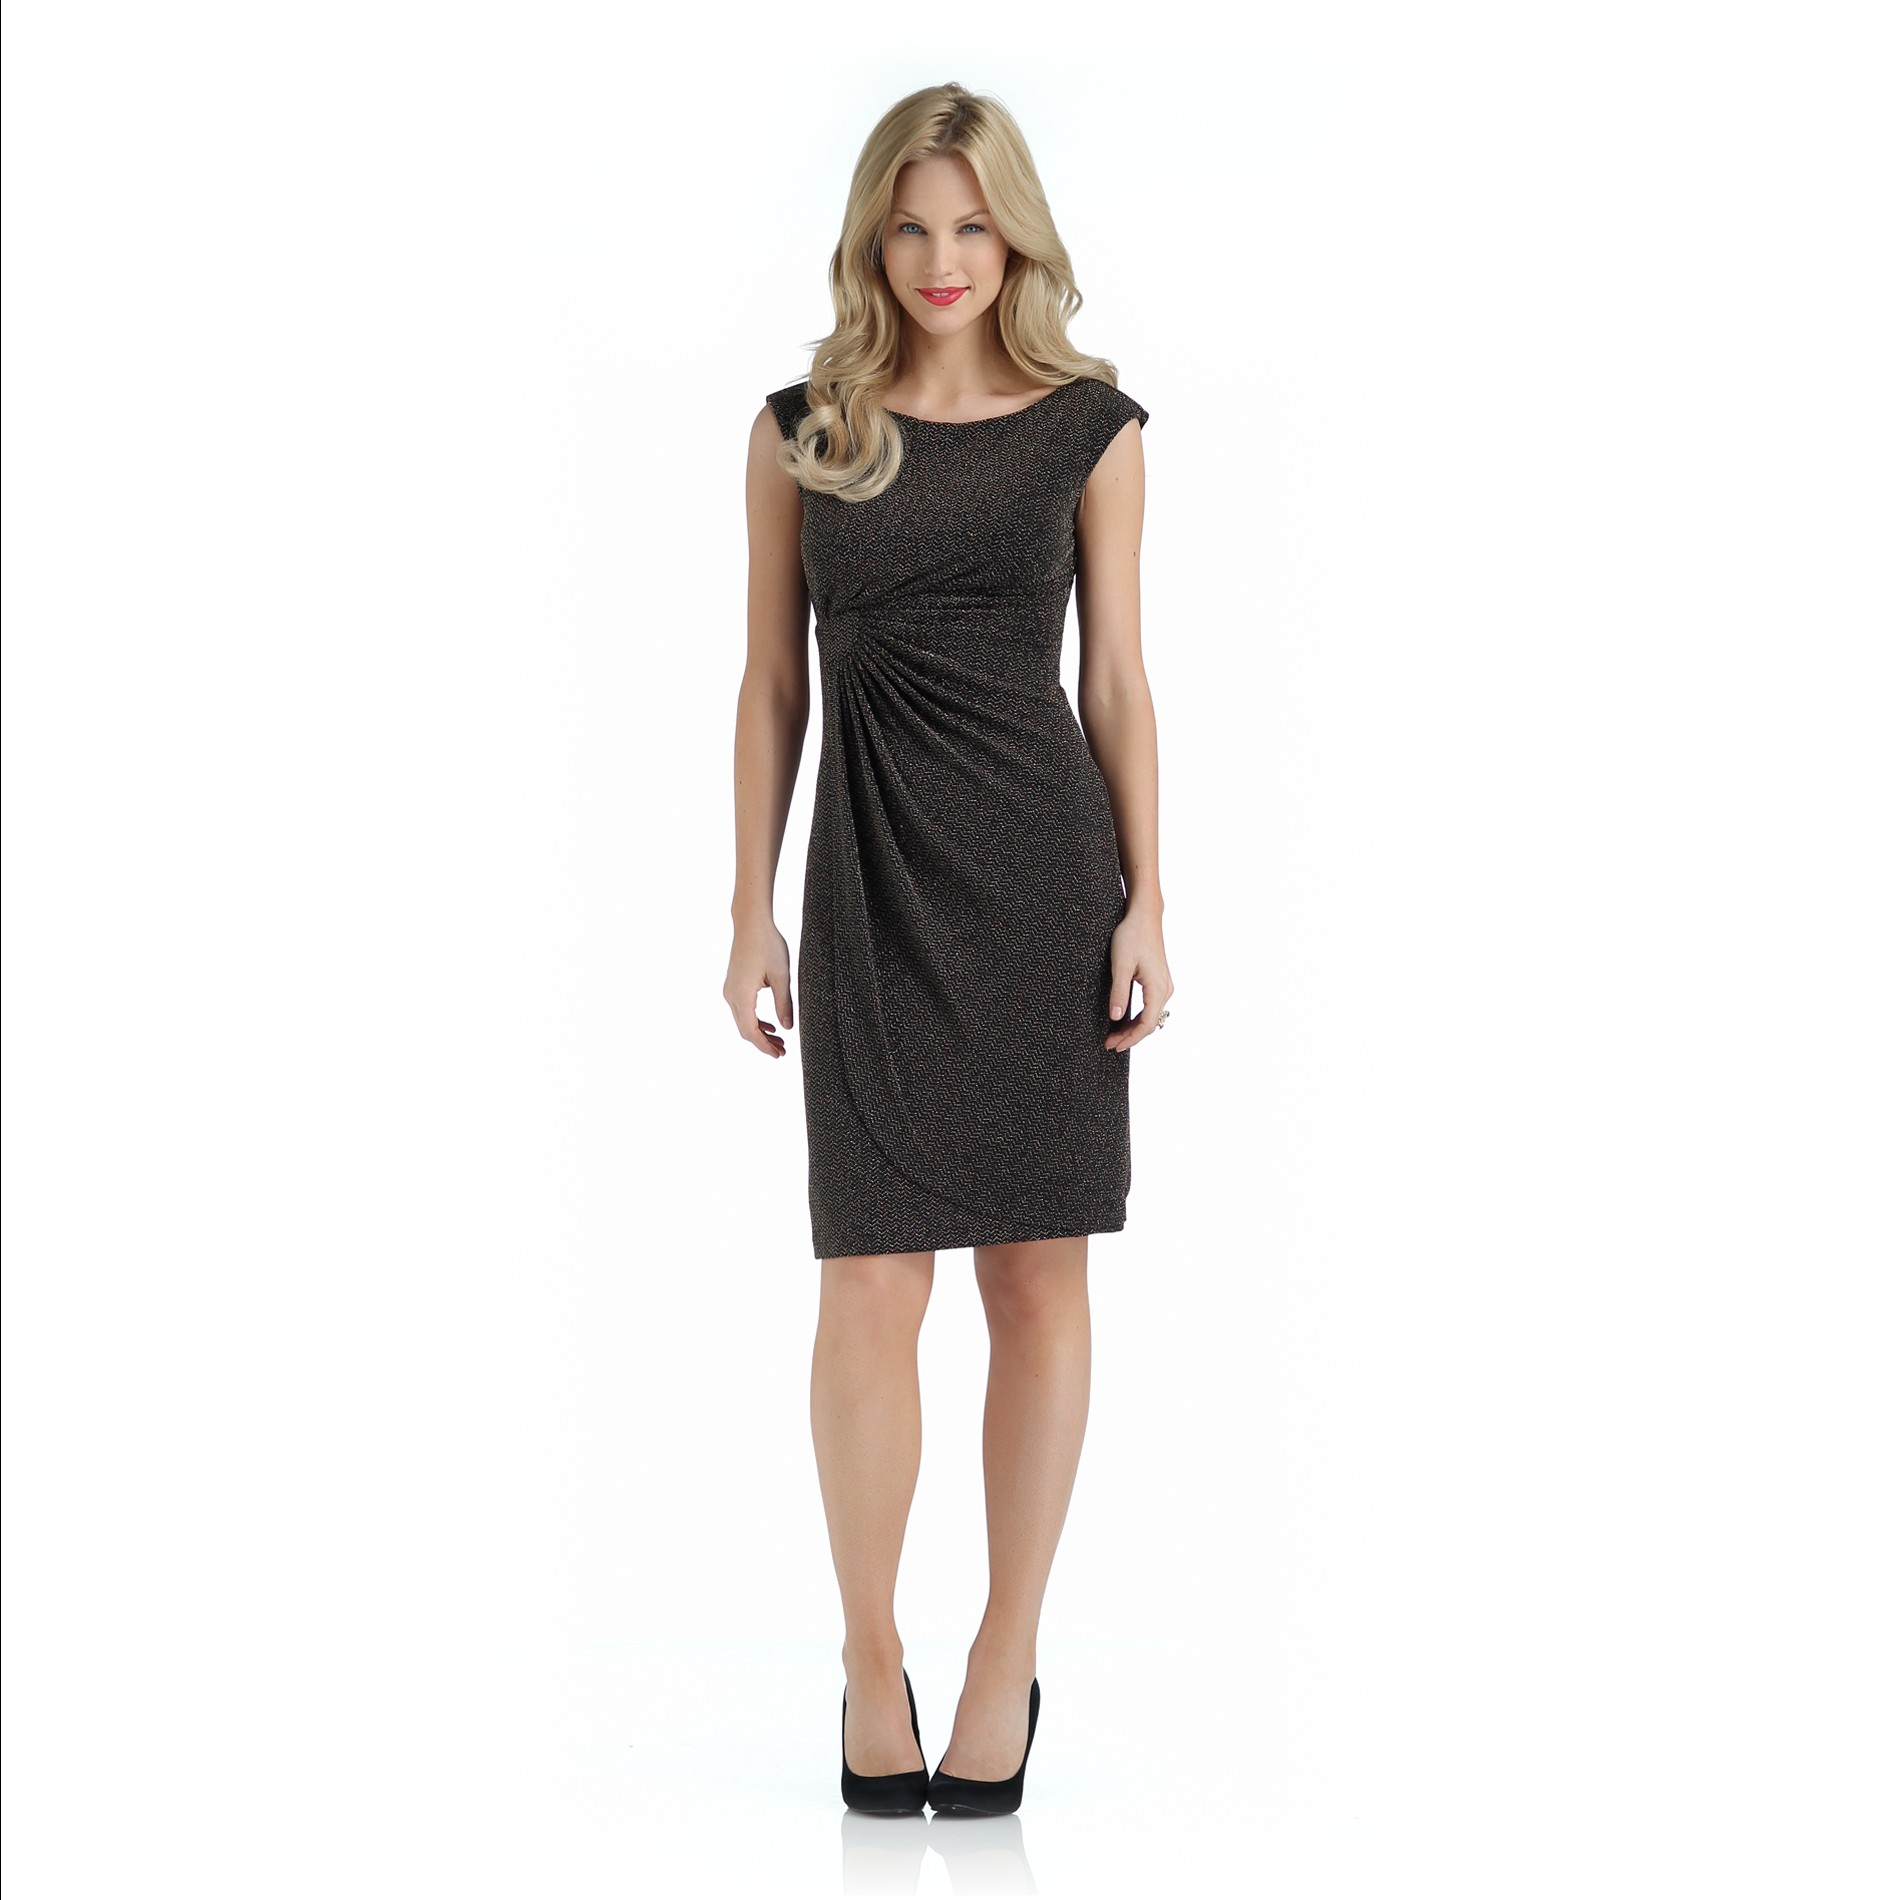 Connected Apparel Women's Evening Dress - Chevron at Sears.com